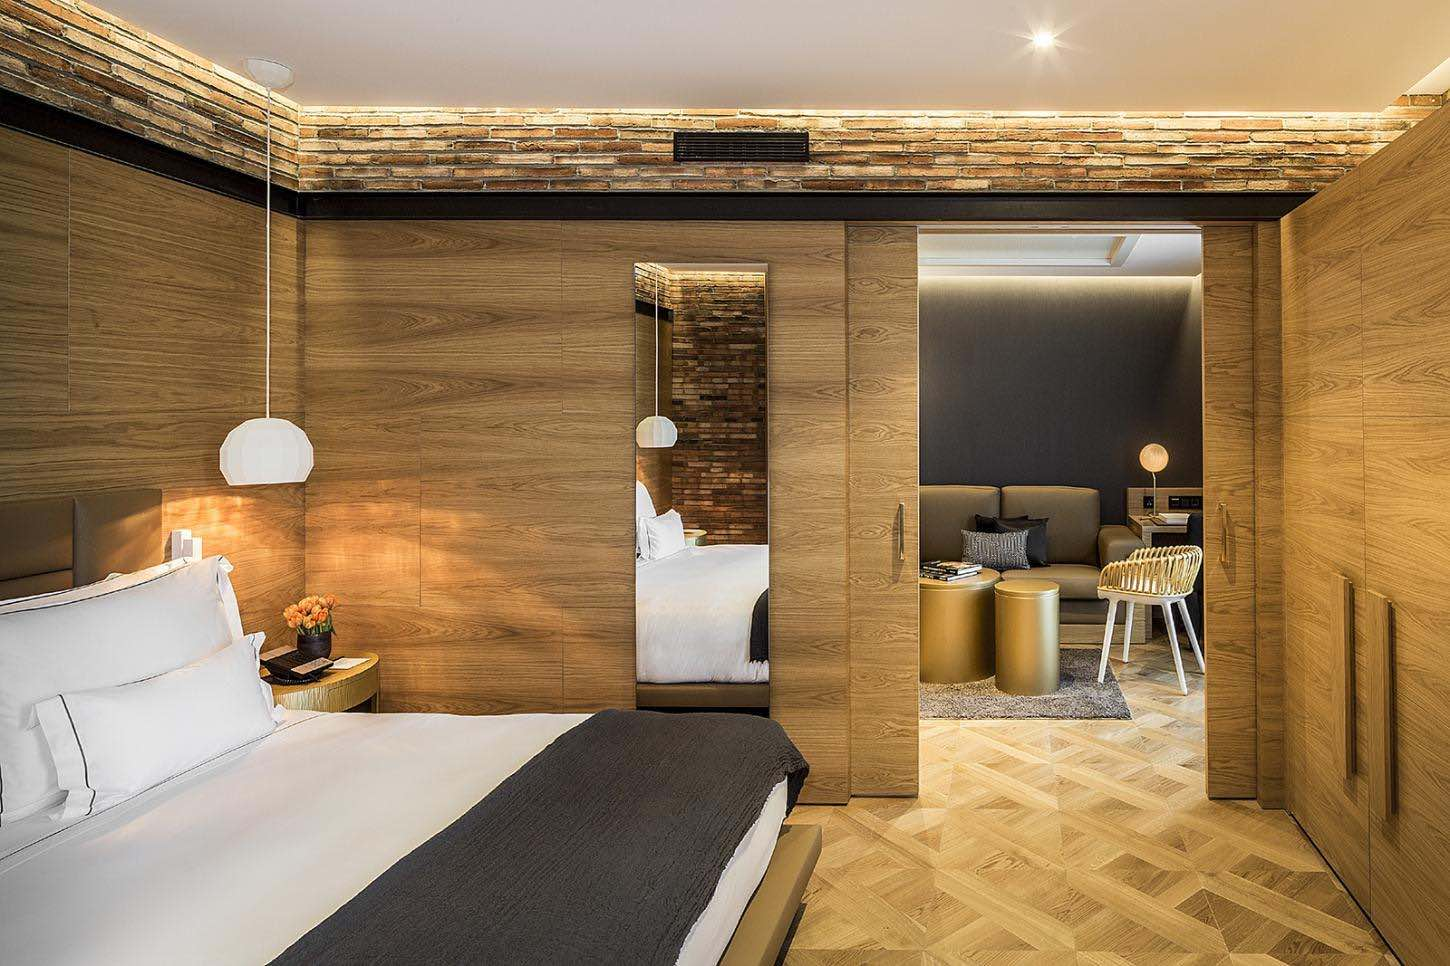 Suite at Monumnet hotel one of the top boutique hotels in Barcelona with bed and bathroom